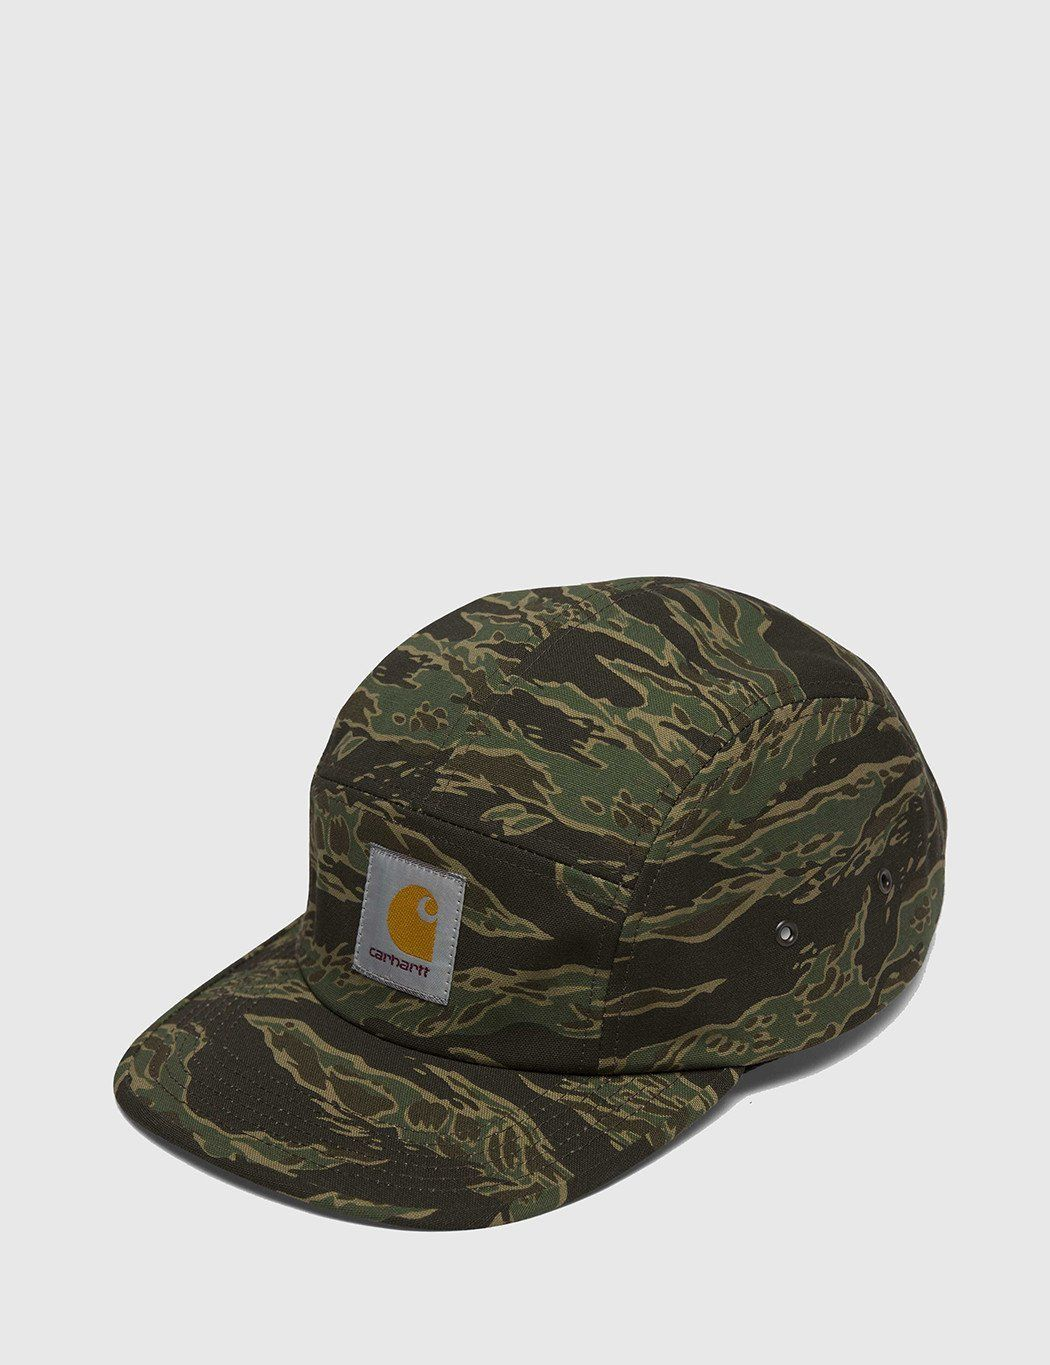 a6c6540a23b Carhartt Backley 5-Panel Cap - Tiger Camo